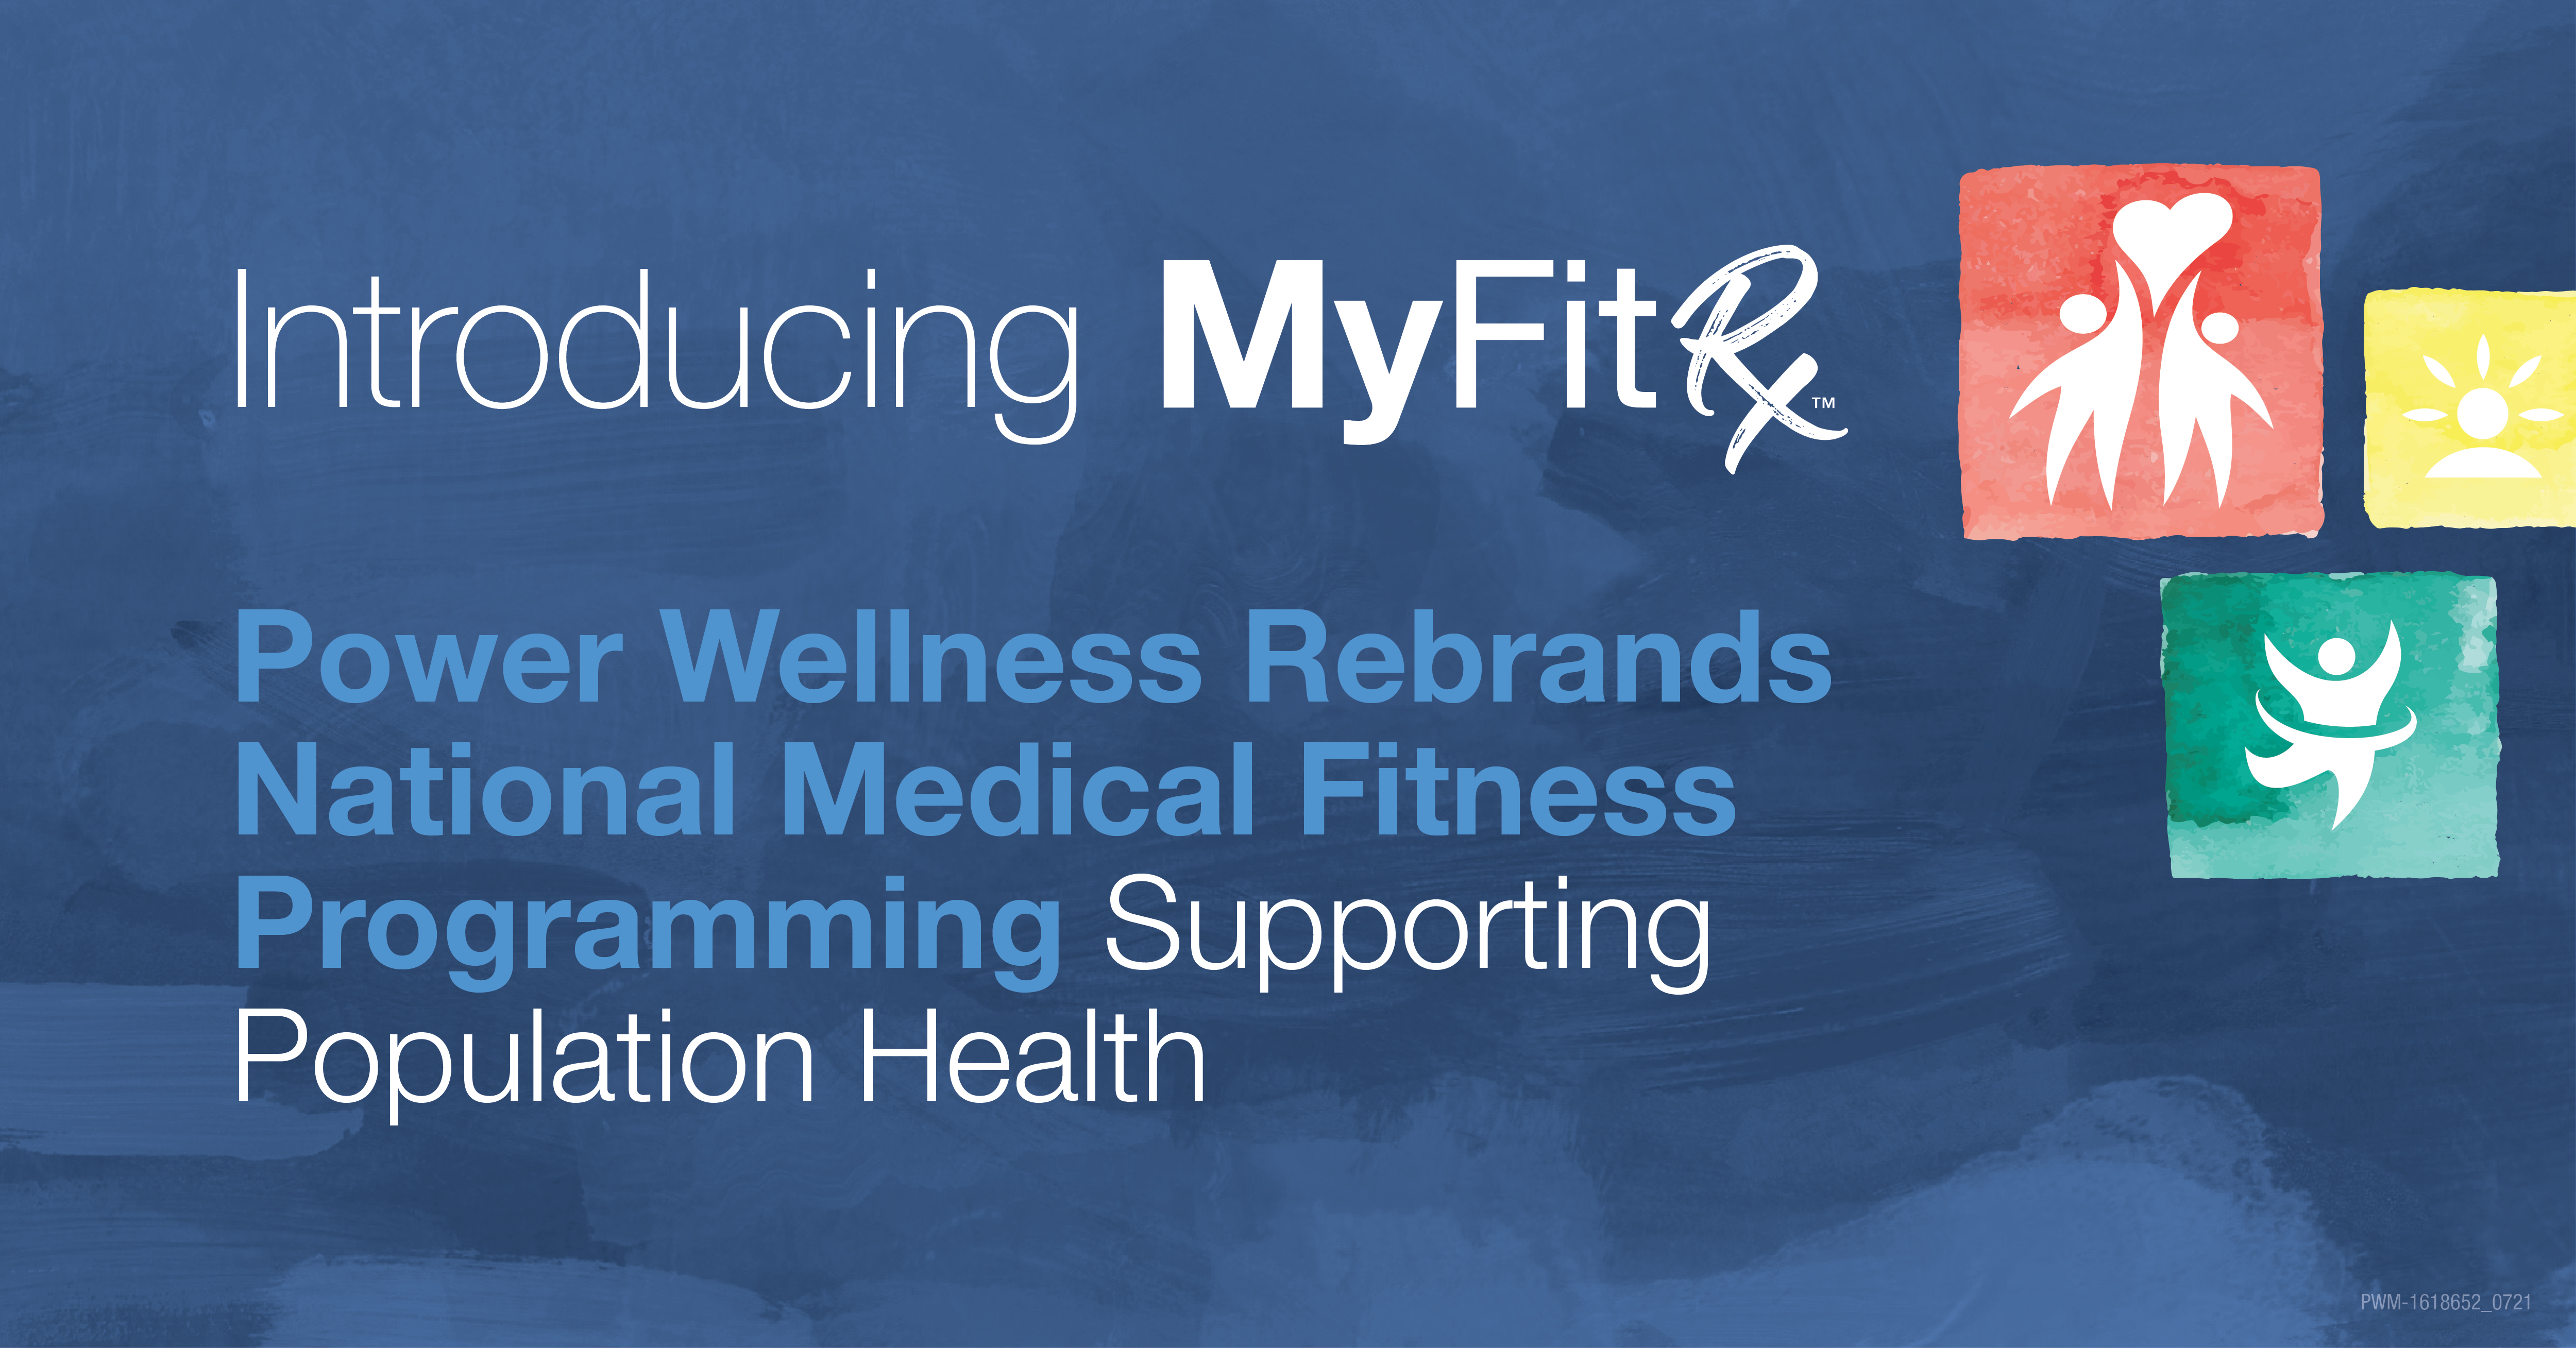 Power Wellness Rebrands National Medical Fitness Programming Supporting Population Health